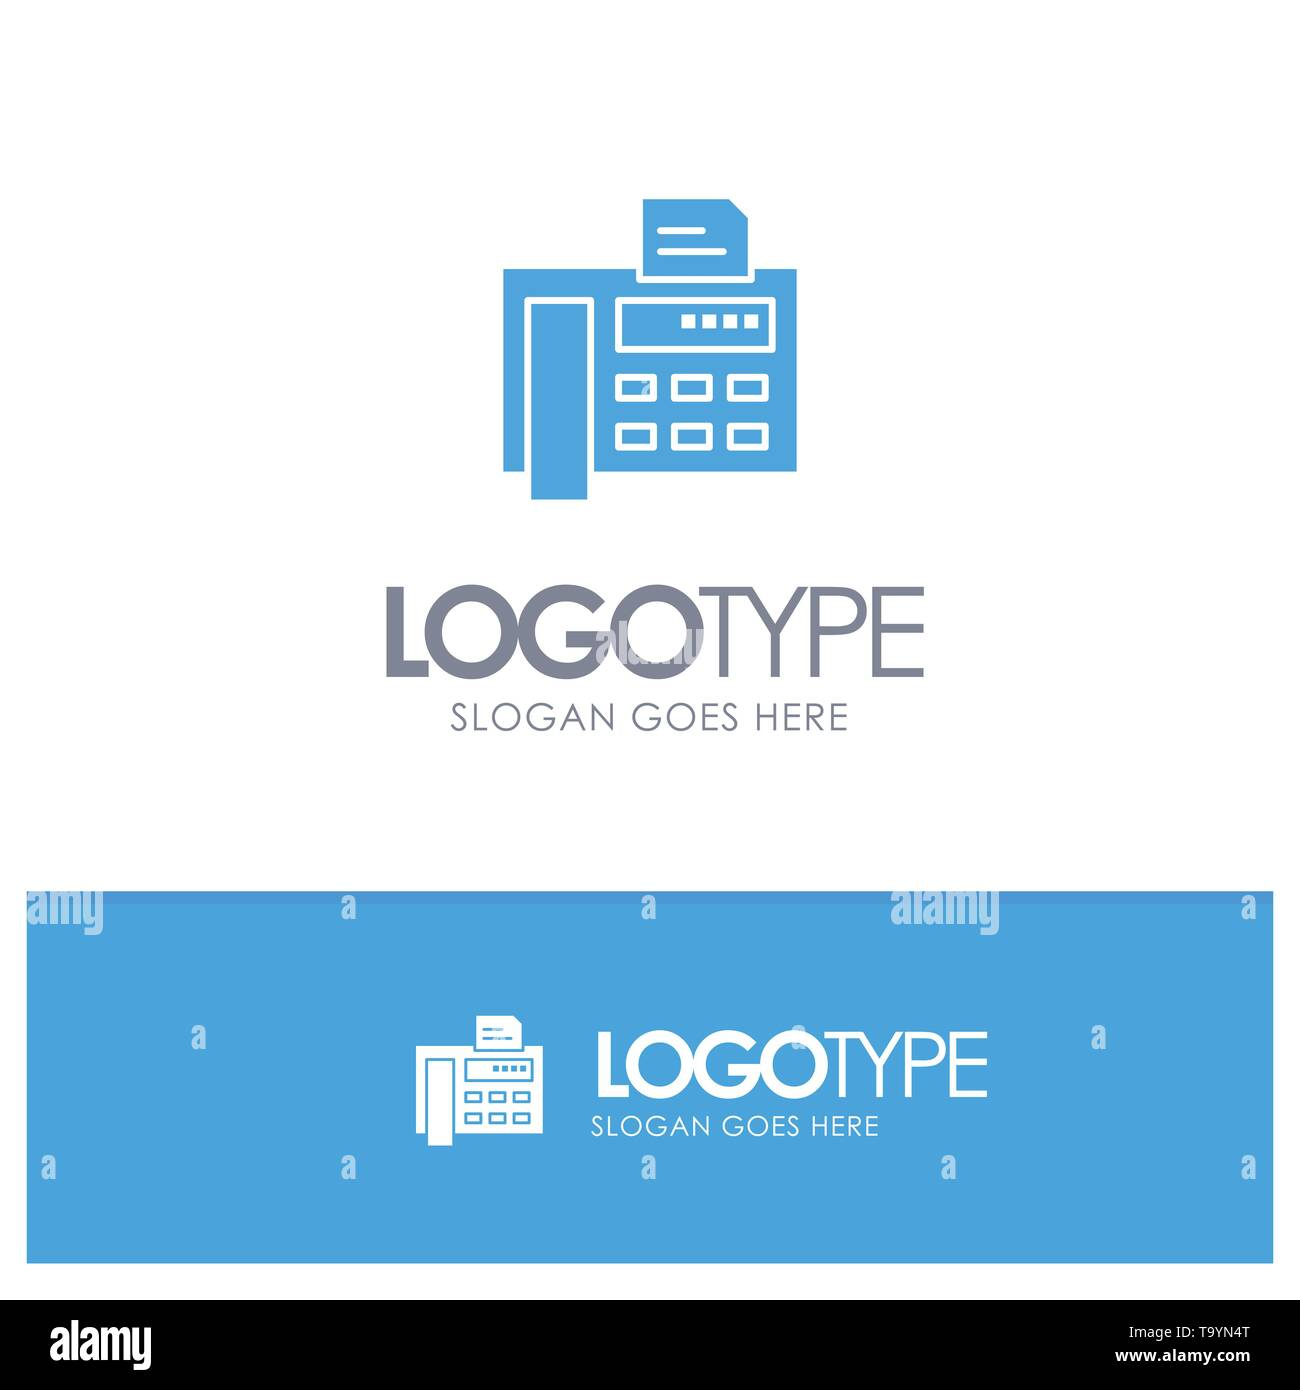 Fax, Phone, Typewriter, Fax Machine Blue Solid Logo with place for tagline - Stock Image